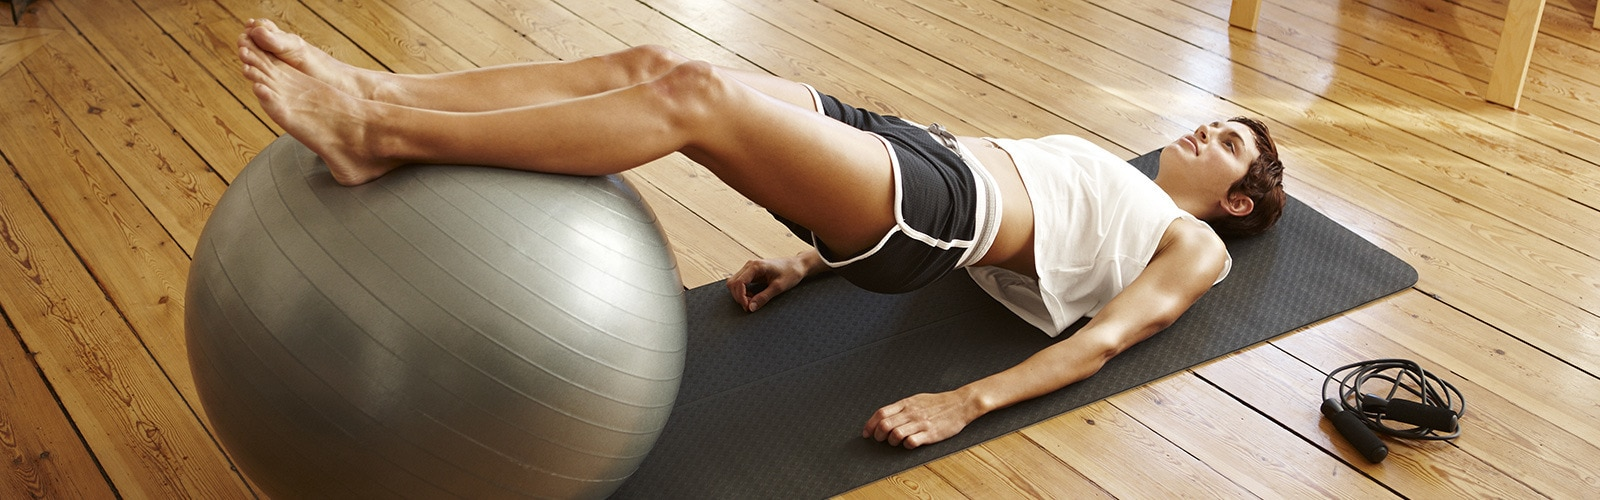 Woman doing pilates workout with ball